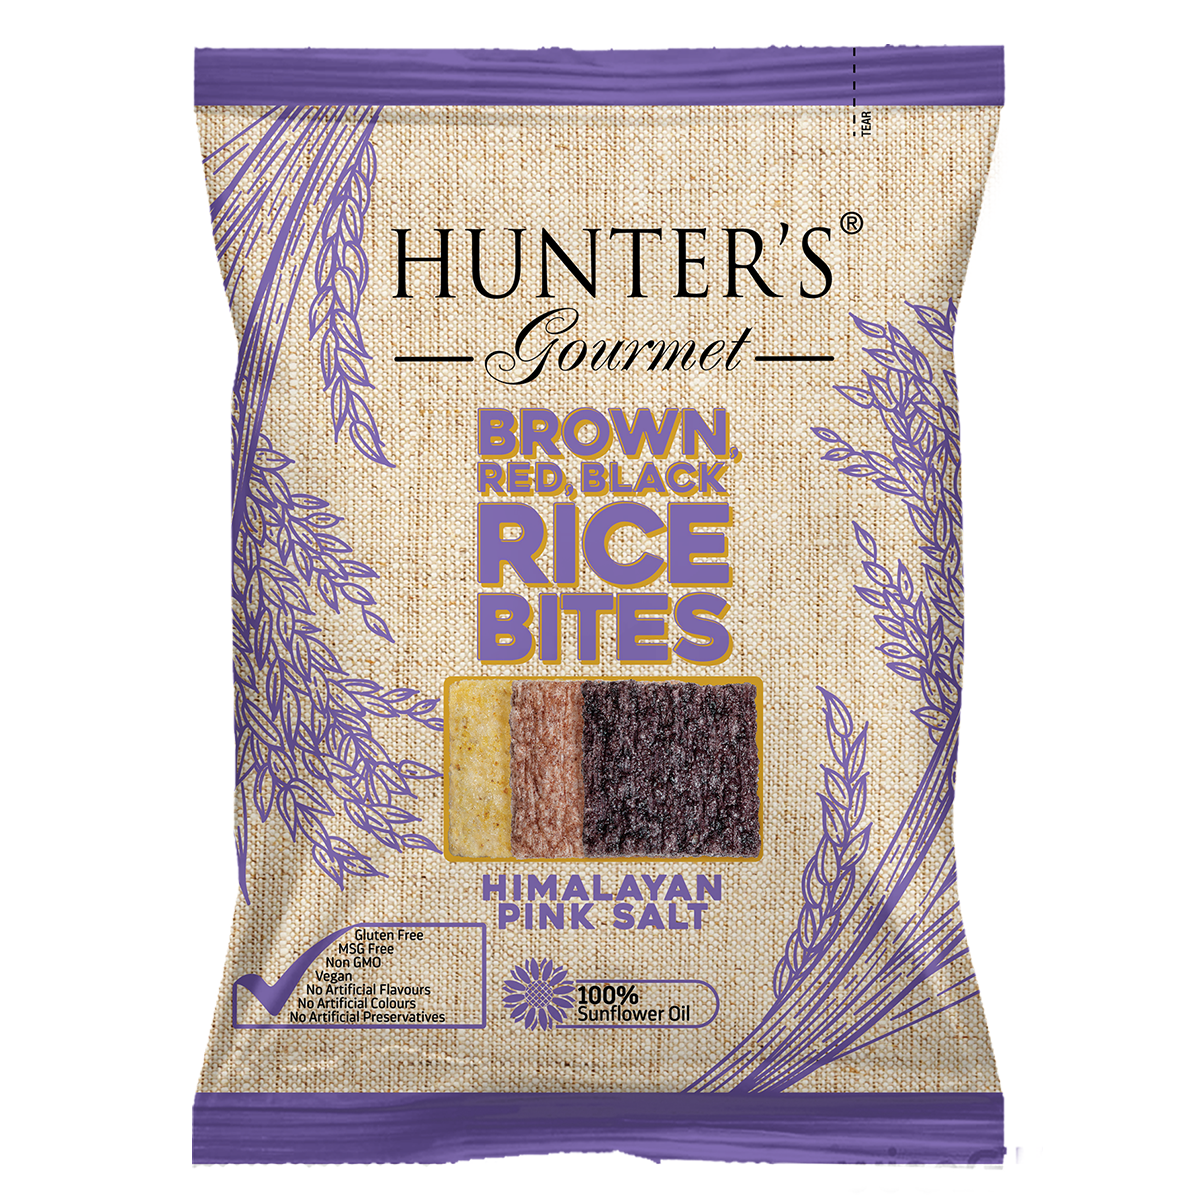 Hunter's Gourmet Brown, Red, Black Rice Bites Himalayan Pink Salt (50gm)